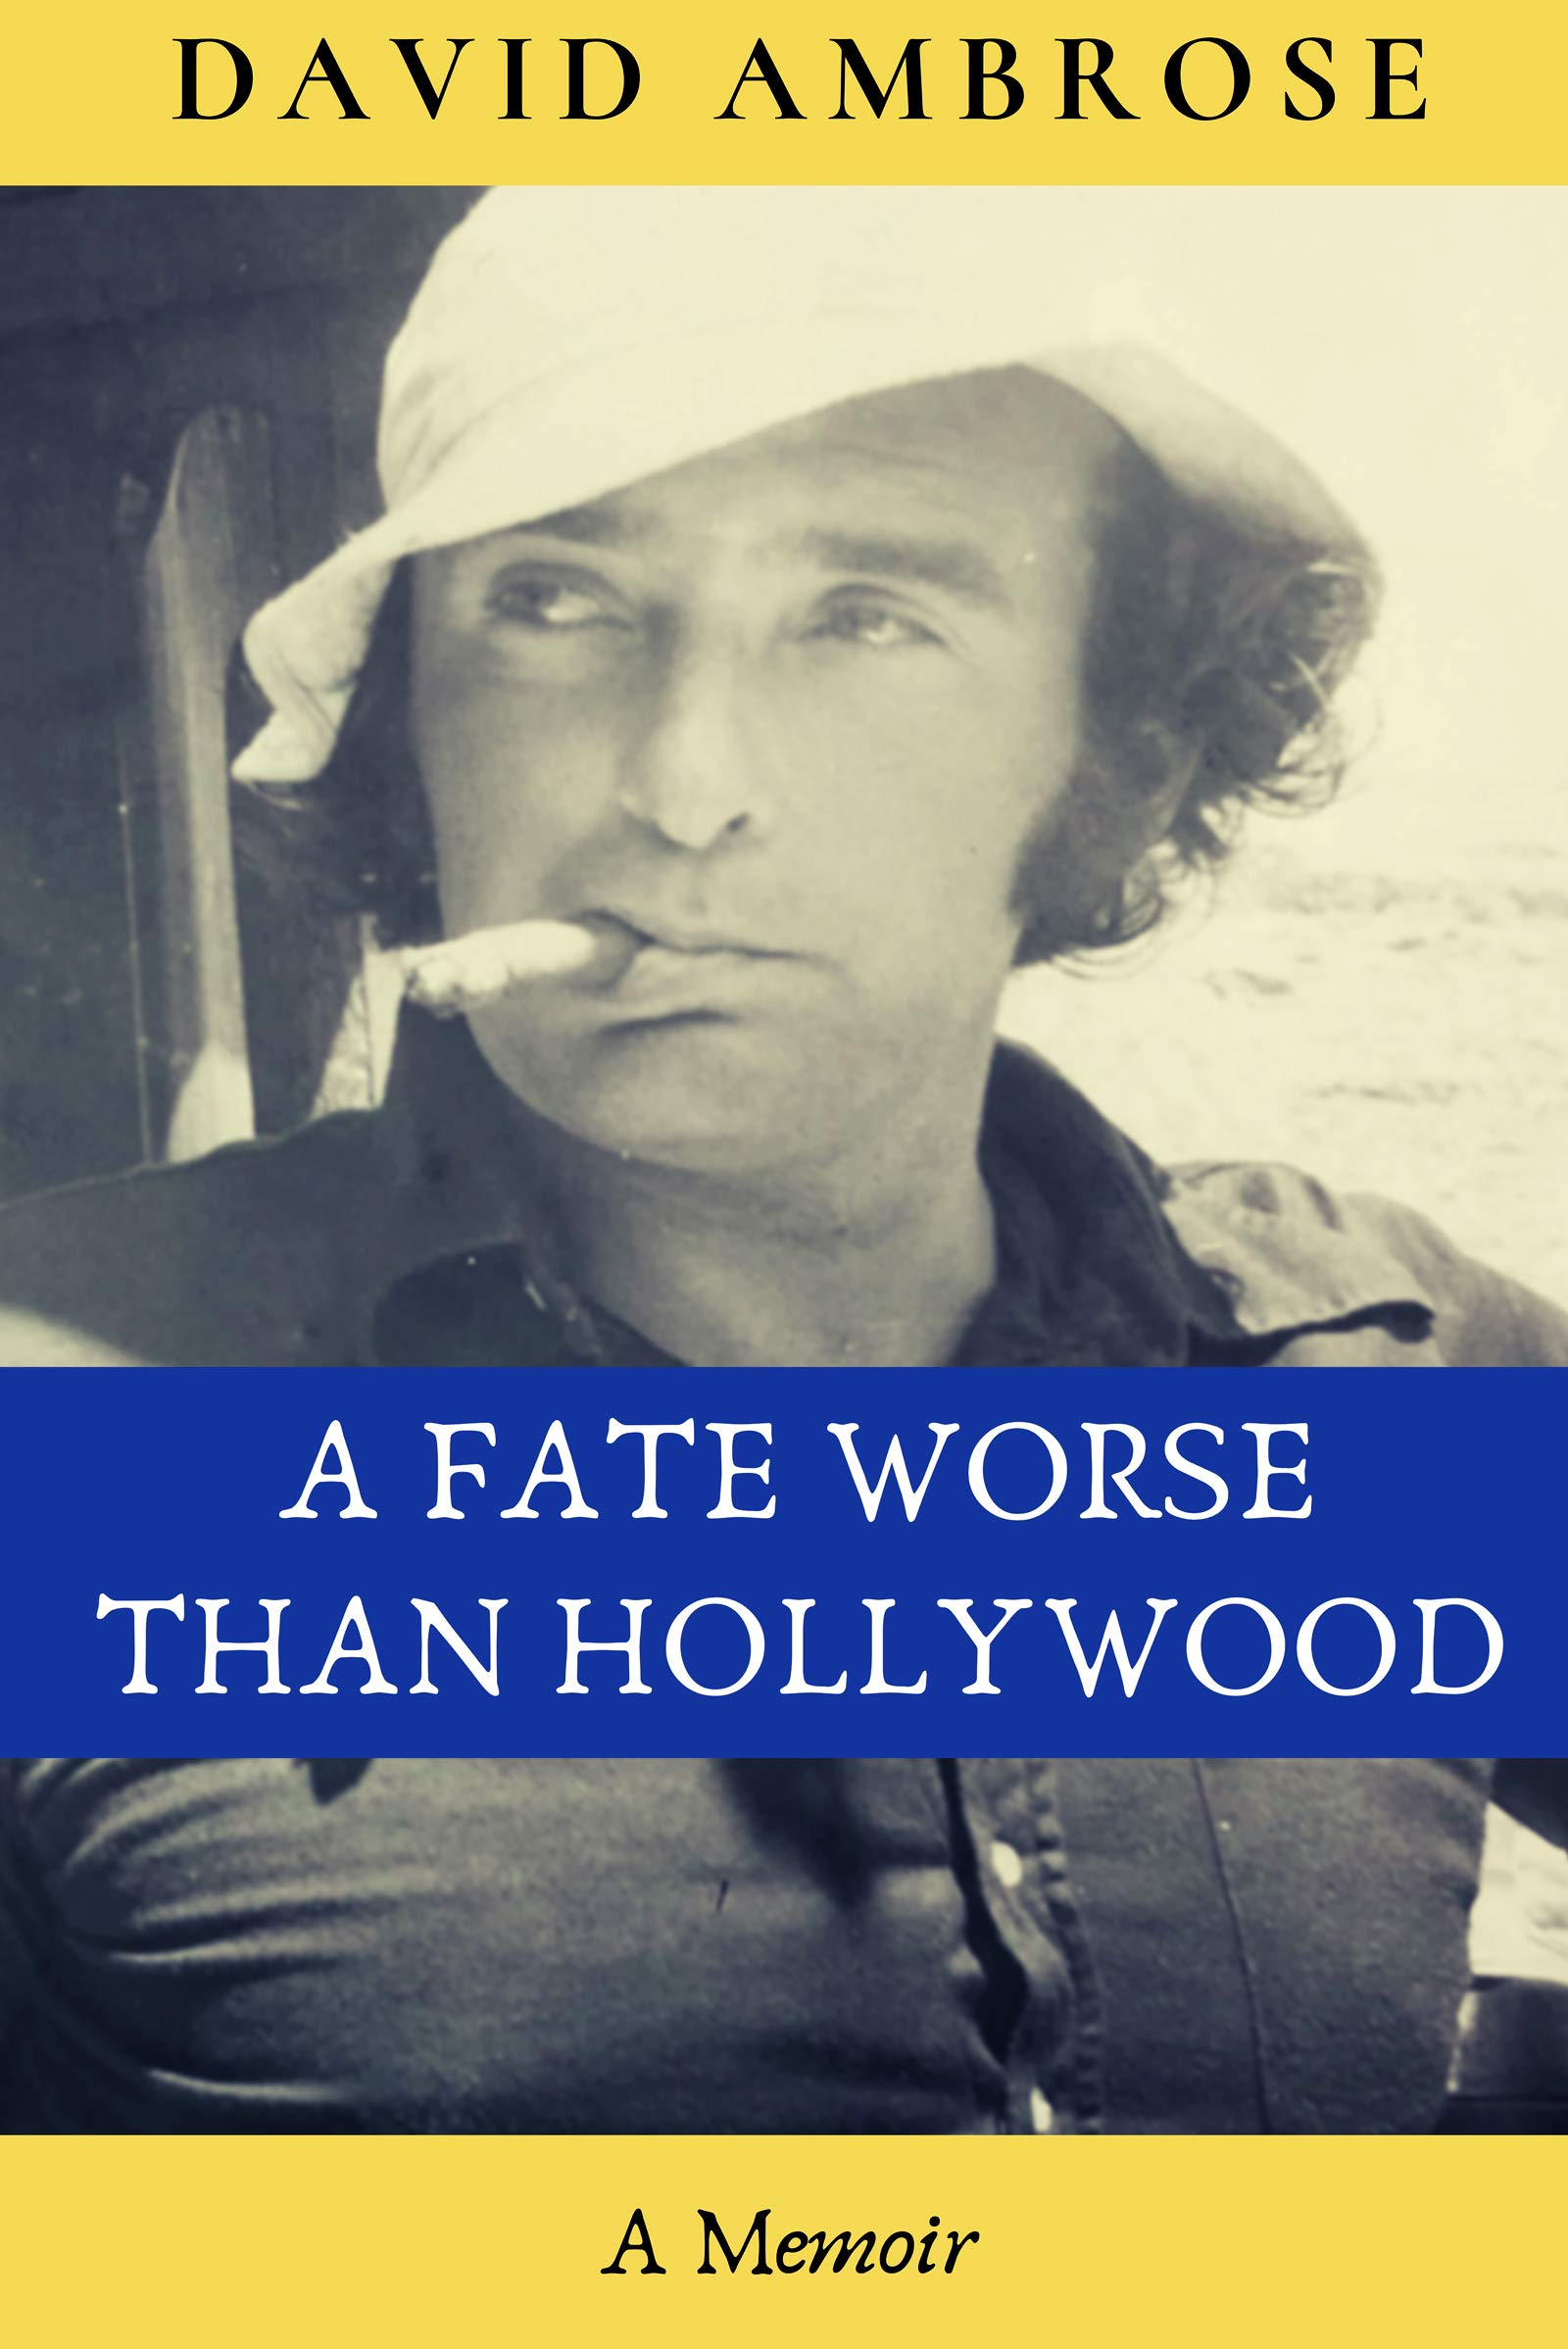 A Fate Worse than Hollywood [Hardcover]